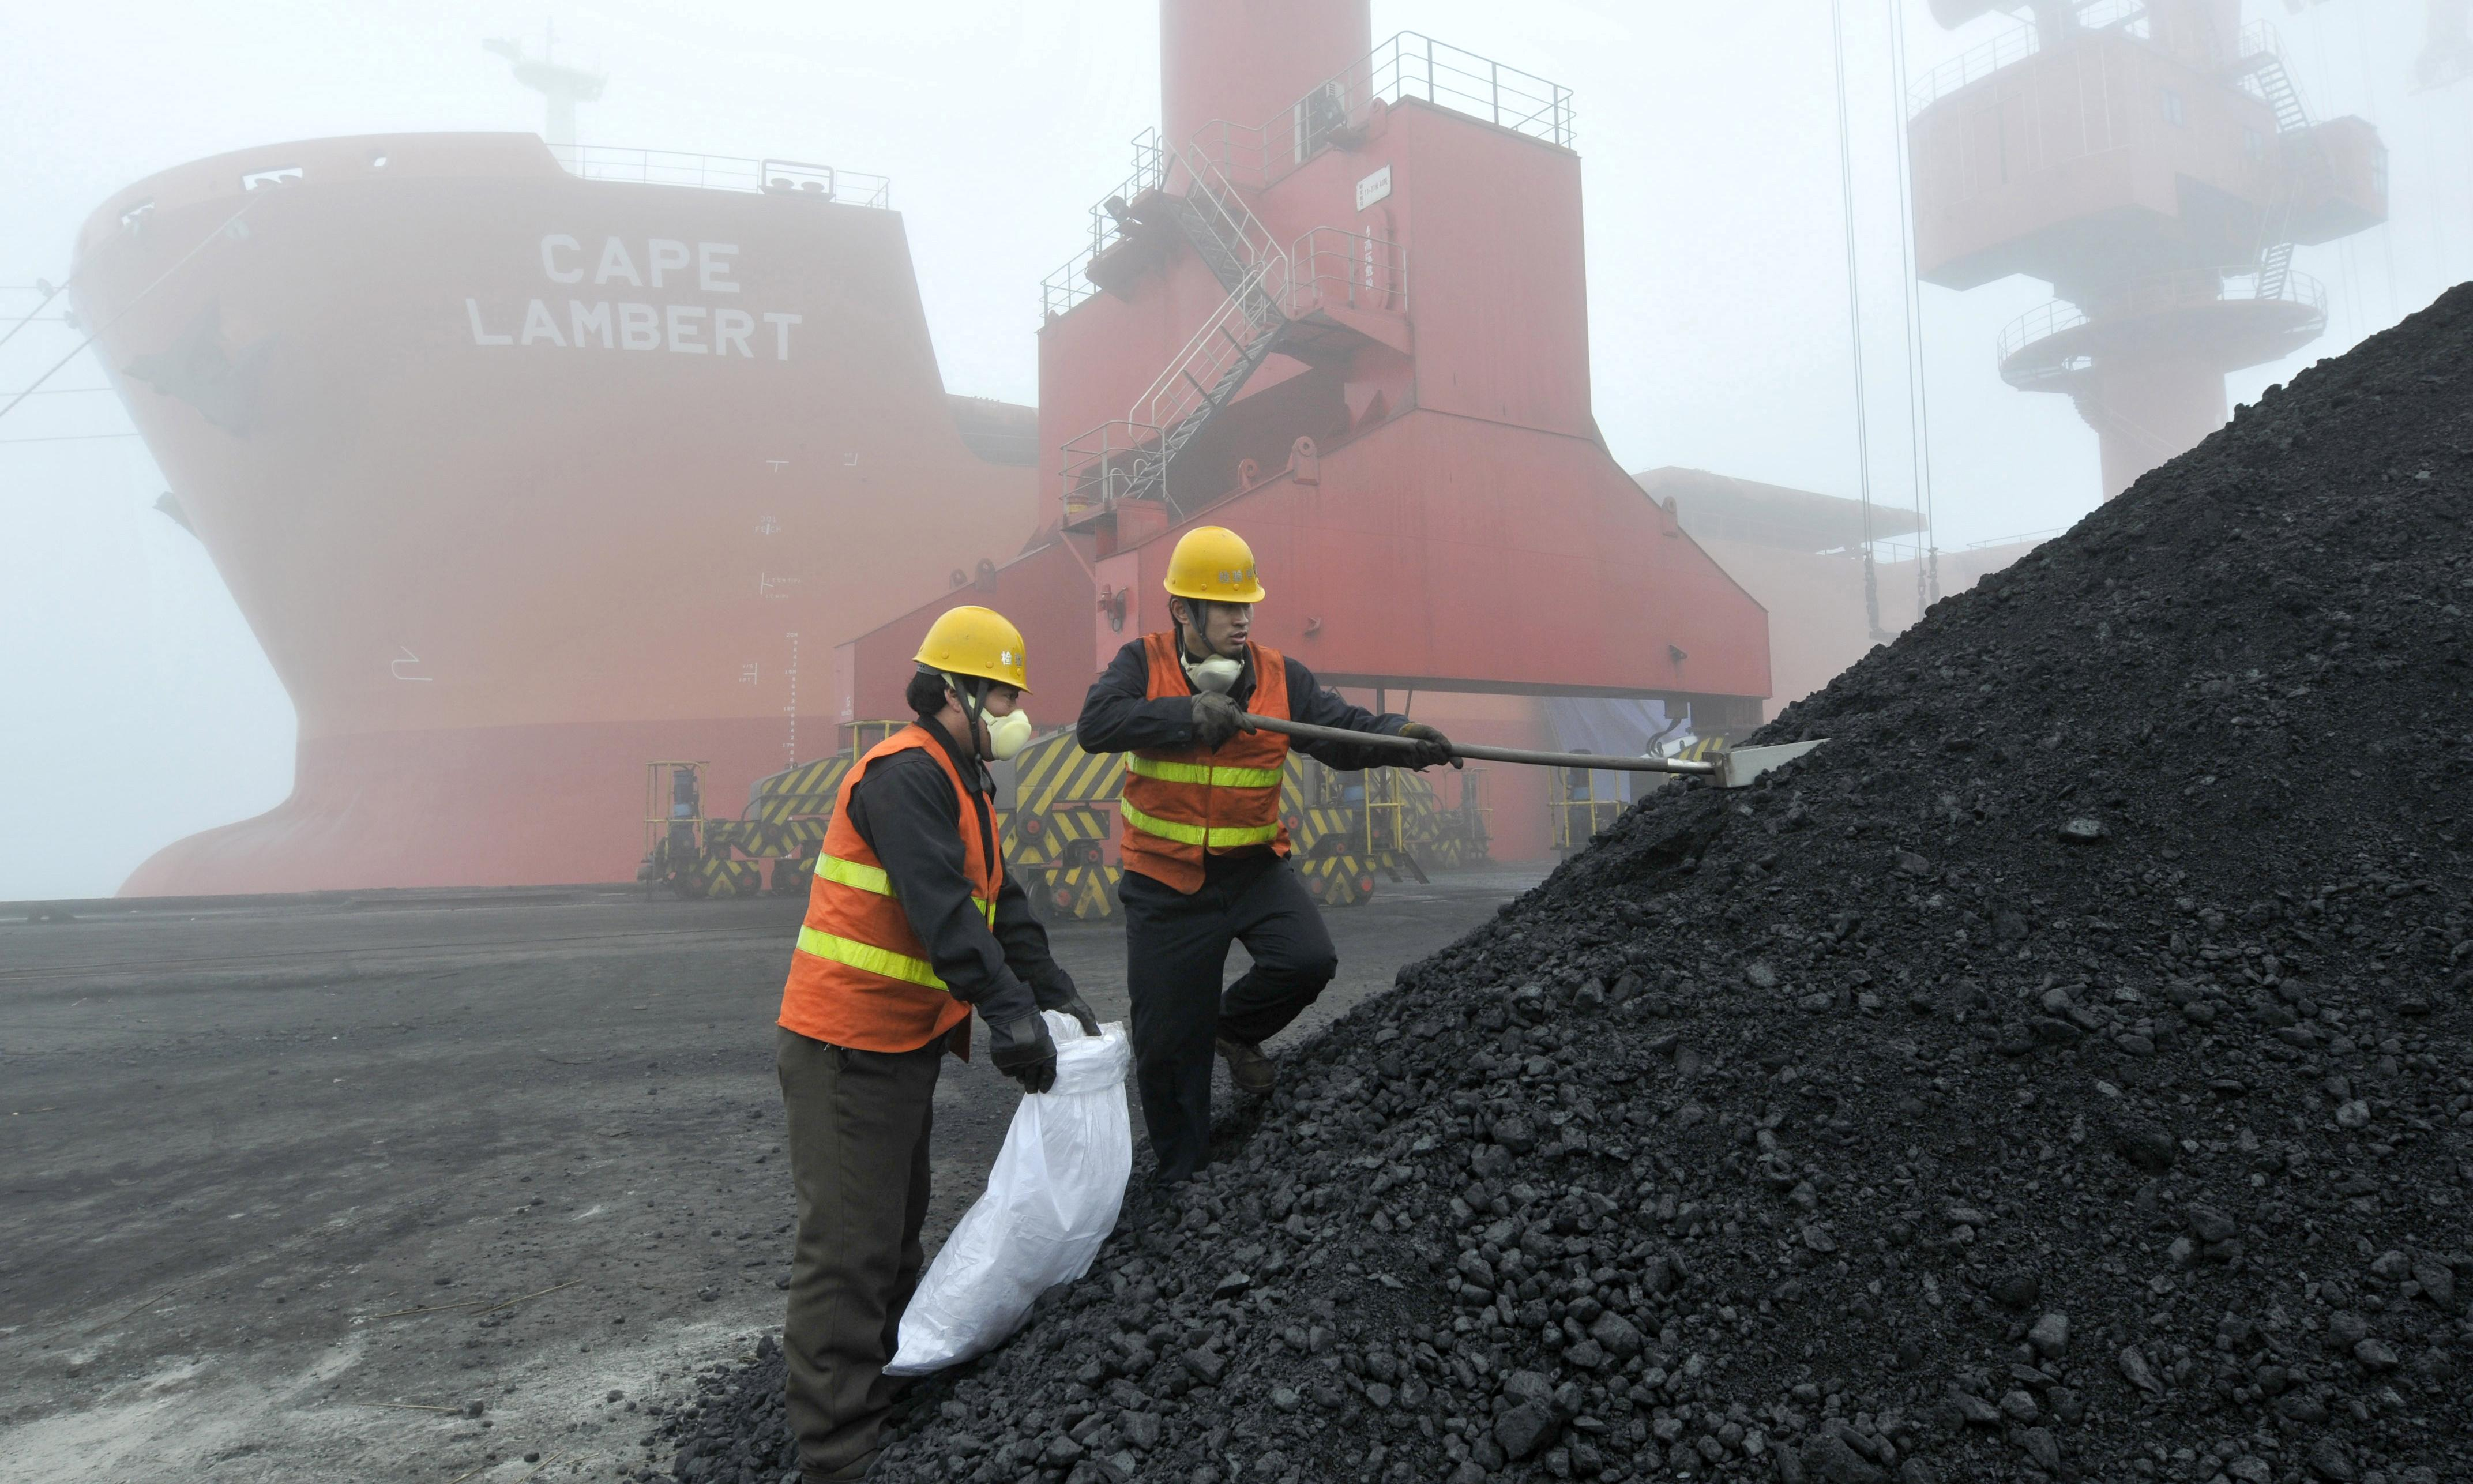 Australia's trade minister raises concerns about China's coal processing delays